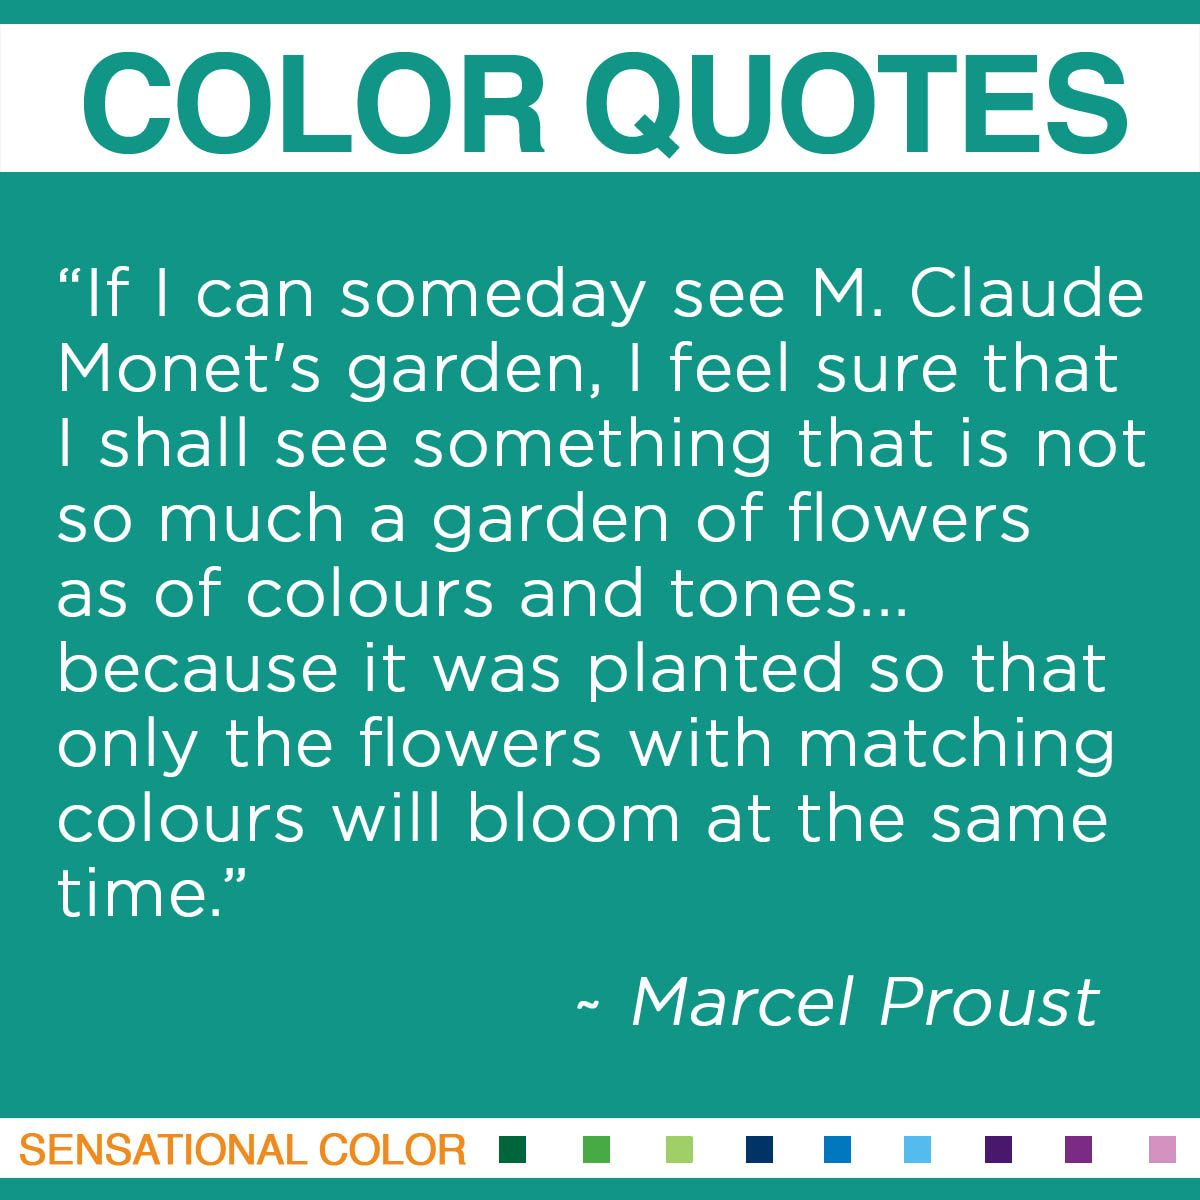 """If I can someday see M. Claude Monet's garden, I feel sure that I shall see something that is not so much a garden of flowers as of colours and tones… because it was planted so that only the flowers with matching colours will bloom at the same time."" - Marcel Proust"